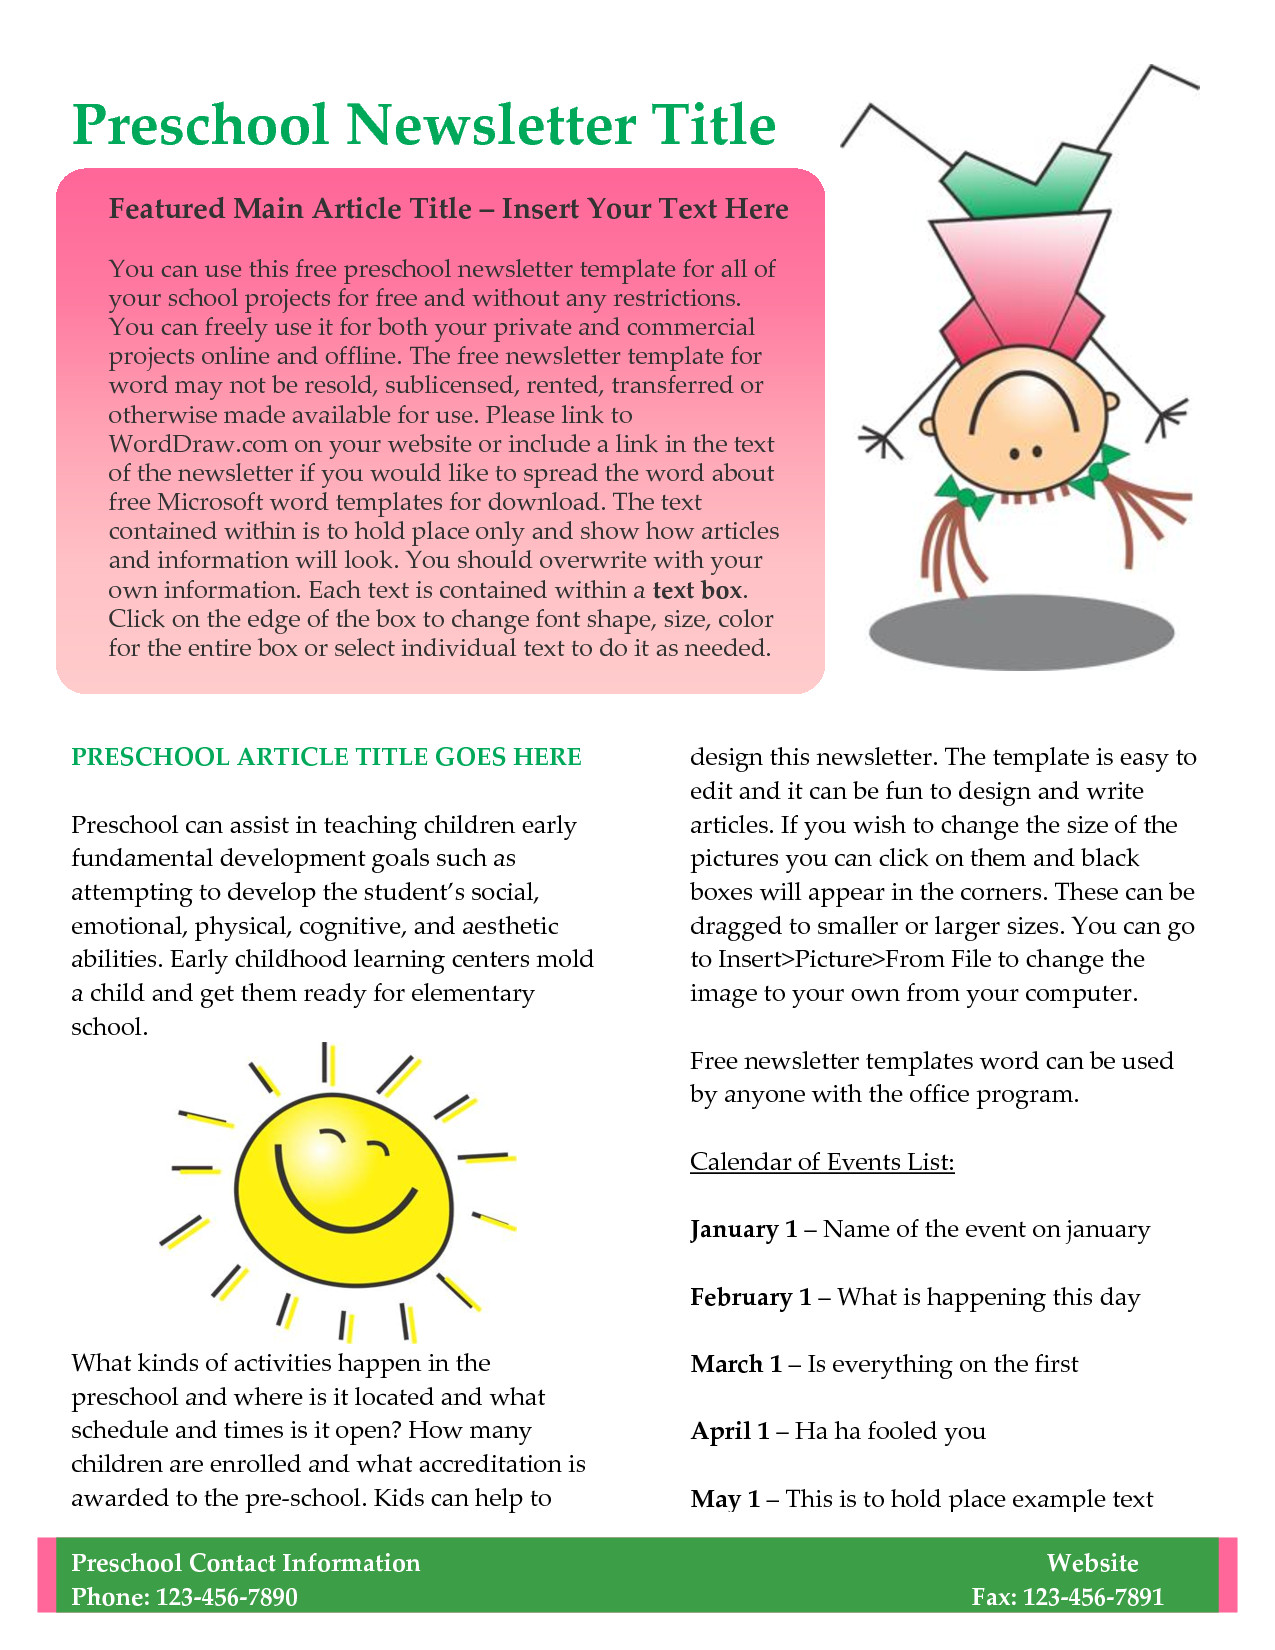 Newsletter Templates for Teachers Preschool Newsletter Template